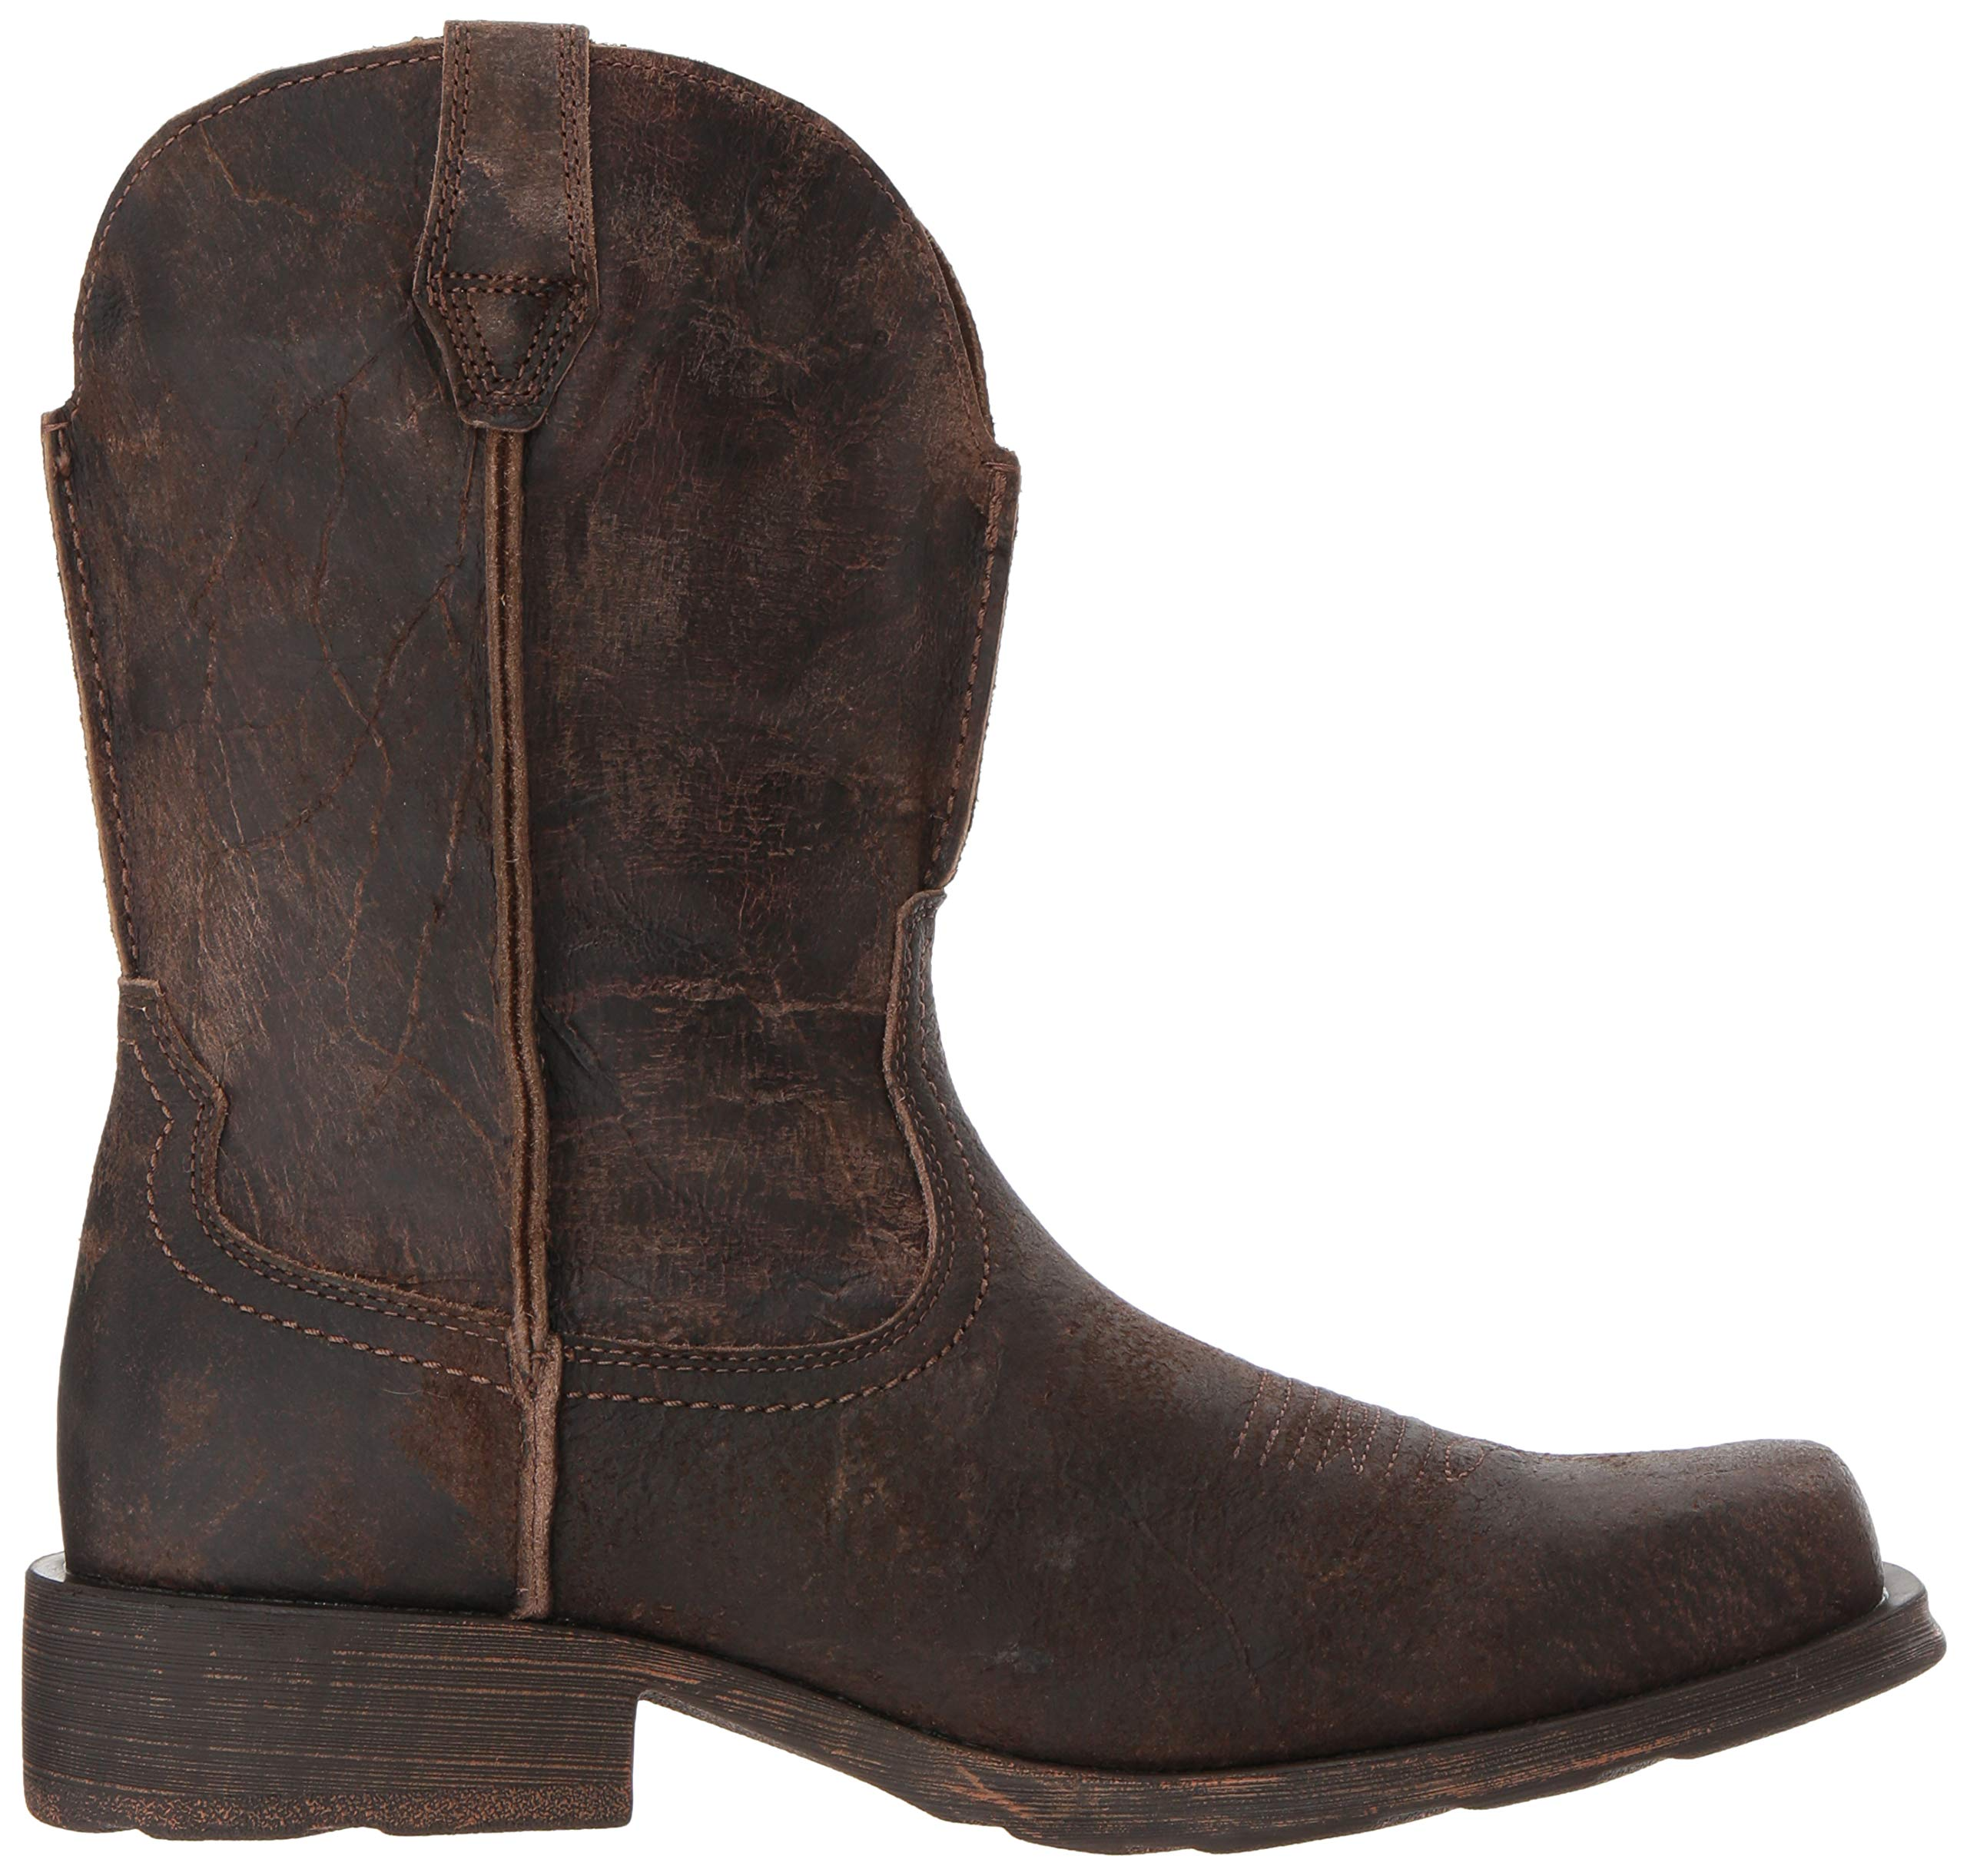 Ariat Men's Rambler Western Boot, Antiqued Grey, 13 2E US by ARIAT (Image #7)